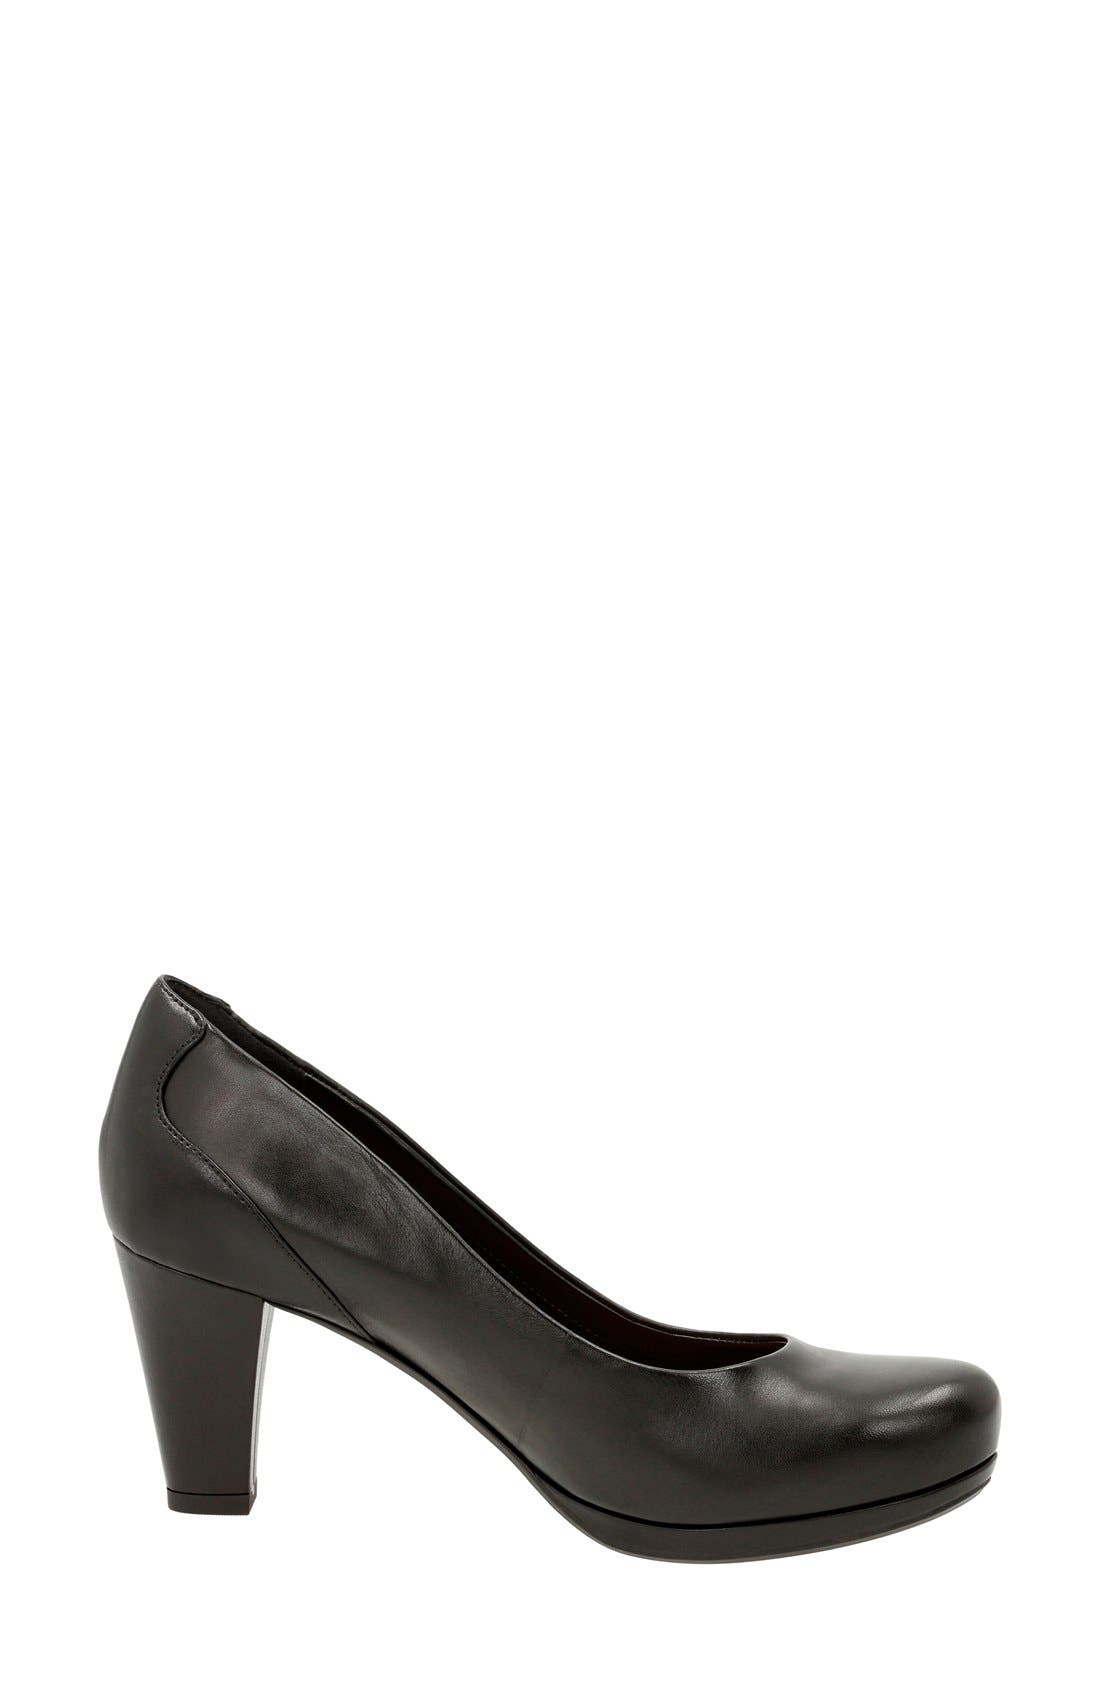 'Chorus Chic' Round Toe Pump,                             Alternate thumbnail 2, color,                             Black Leather